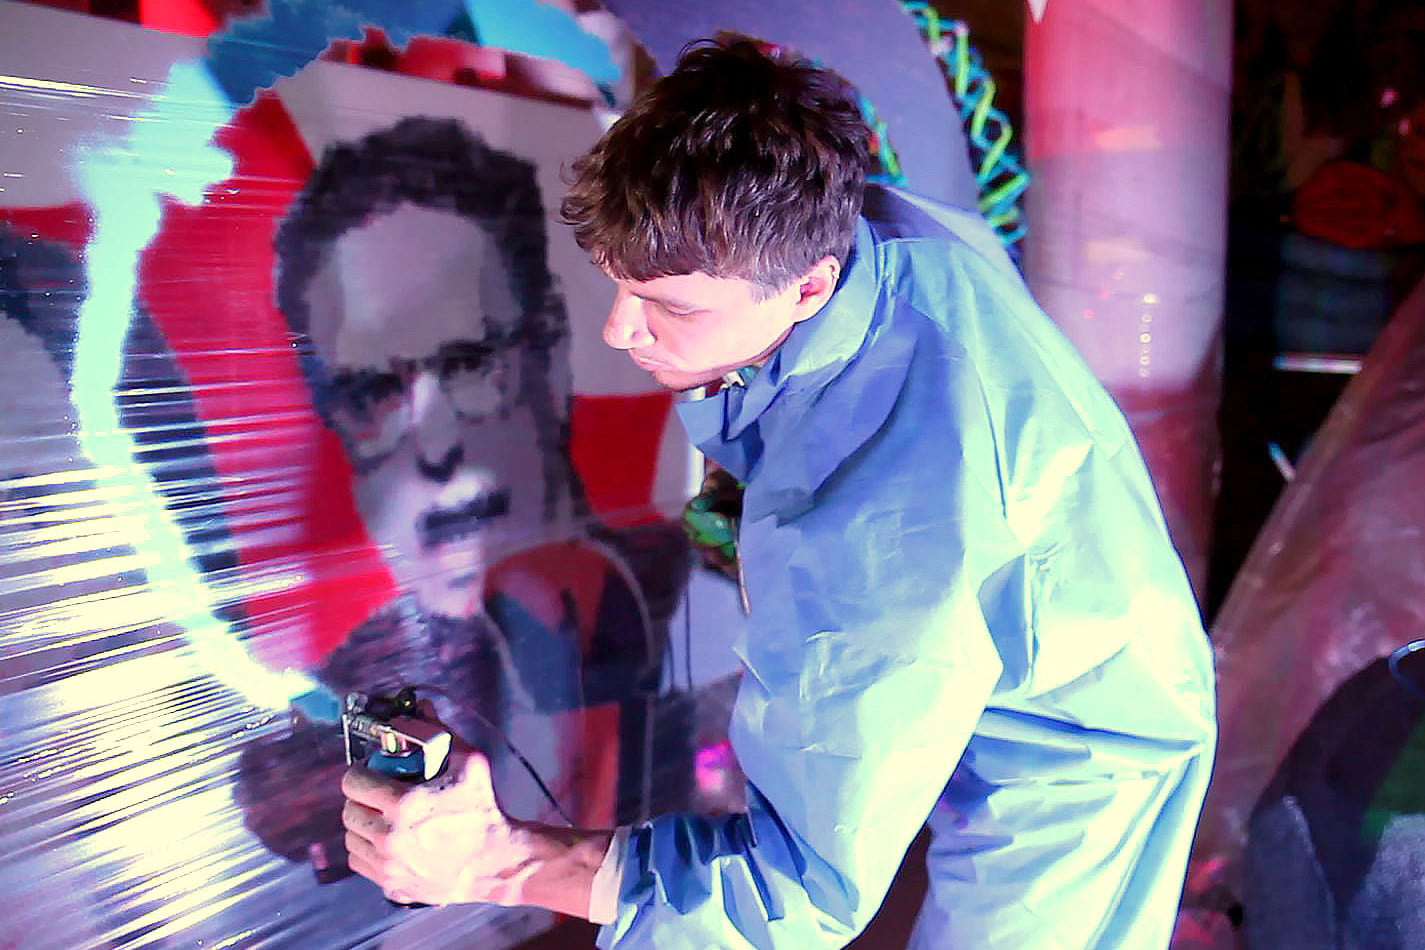 the sprayprinter makes graffiting your wall easy 1